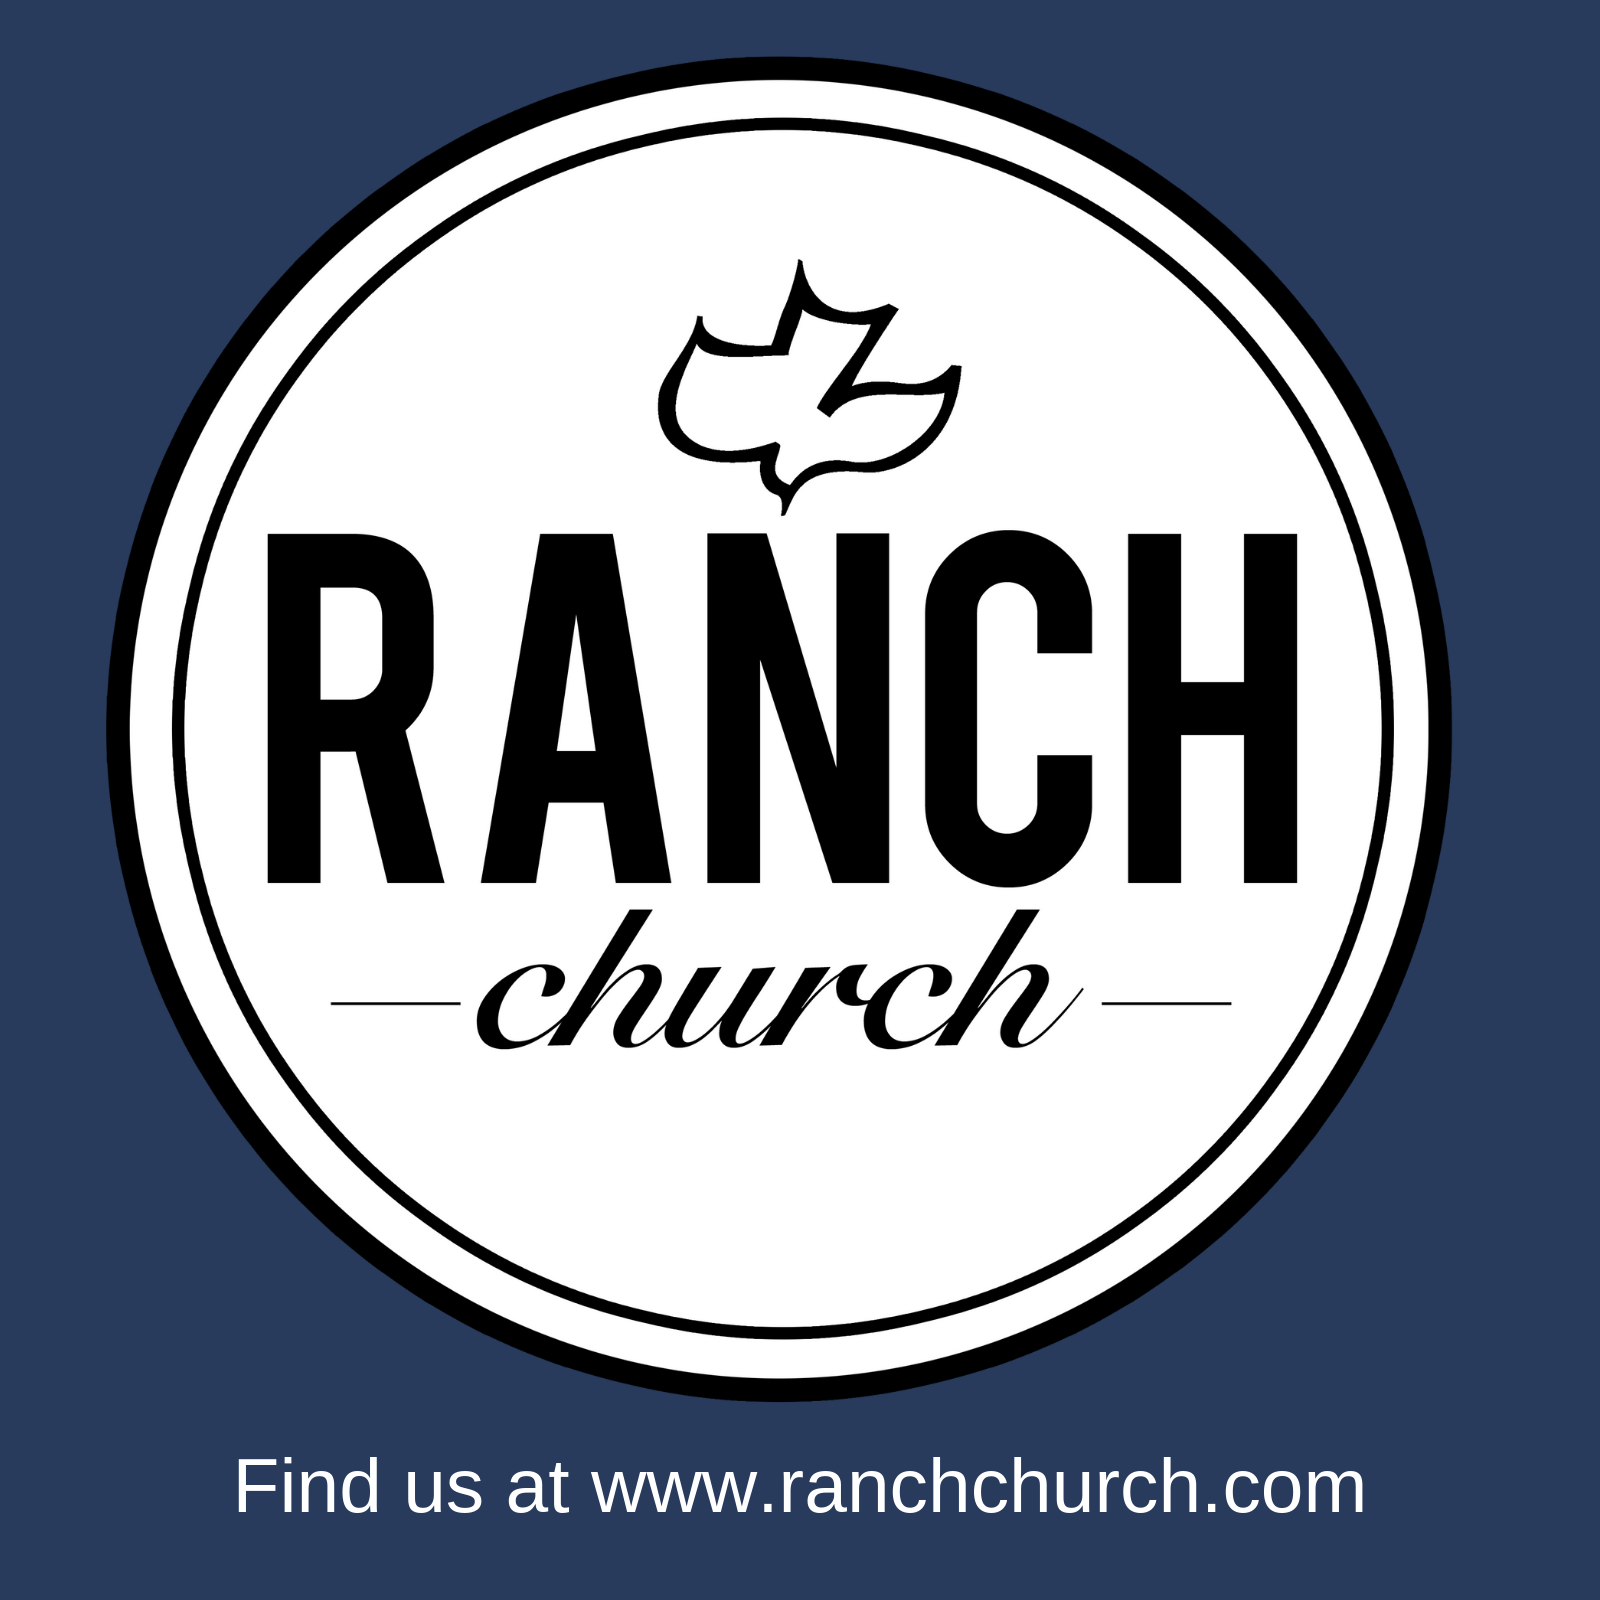 The Ranch Church